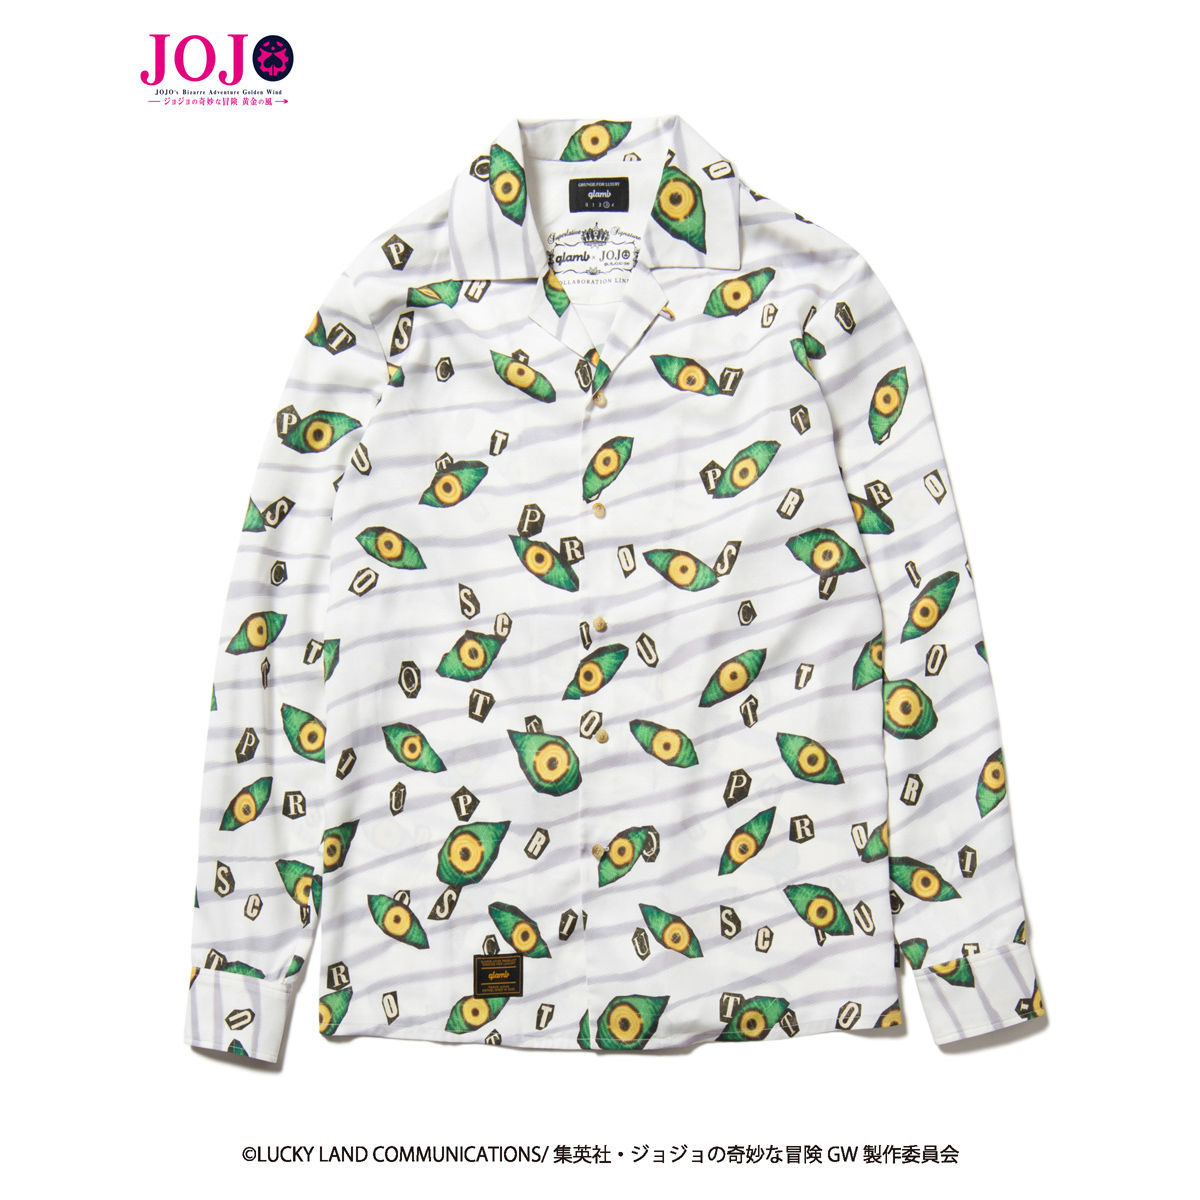 Thankful Dead Dress Shirt—JoJo's Bizarre Adventure: Golden Wind/glamb Collaboration